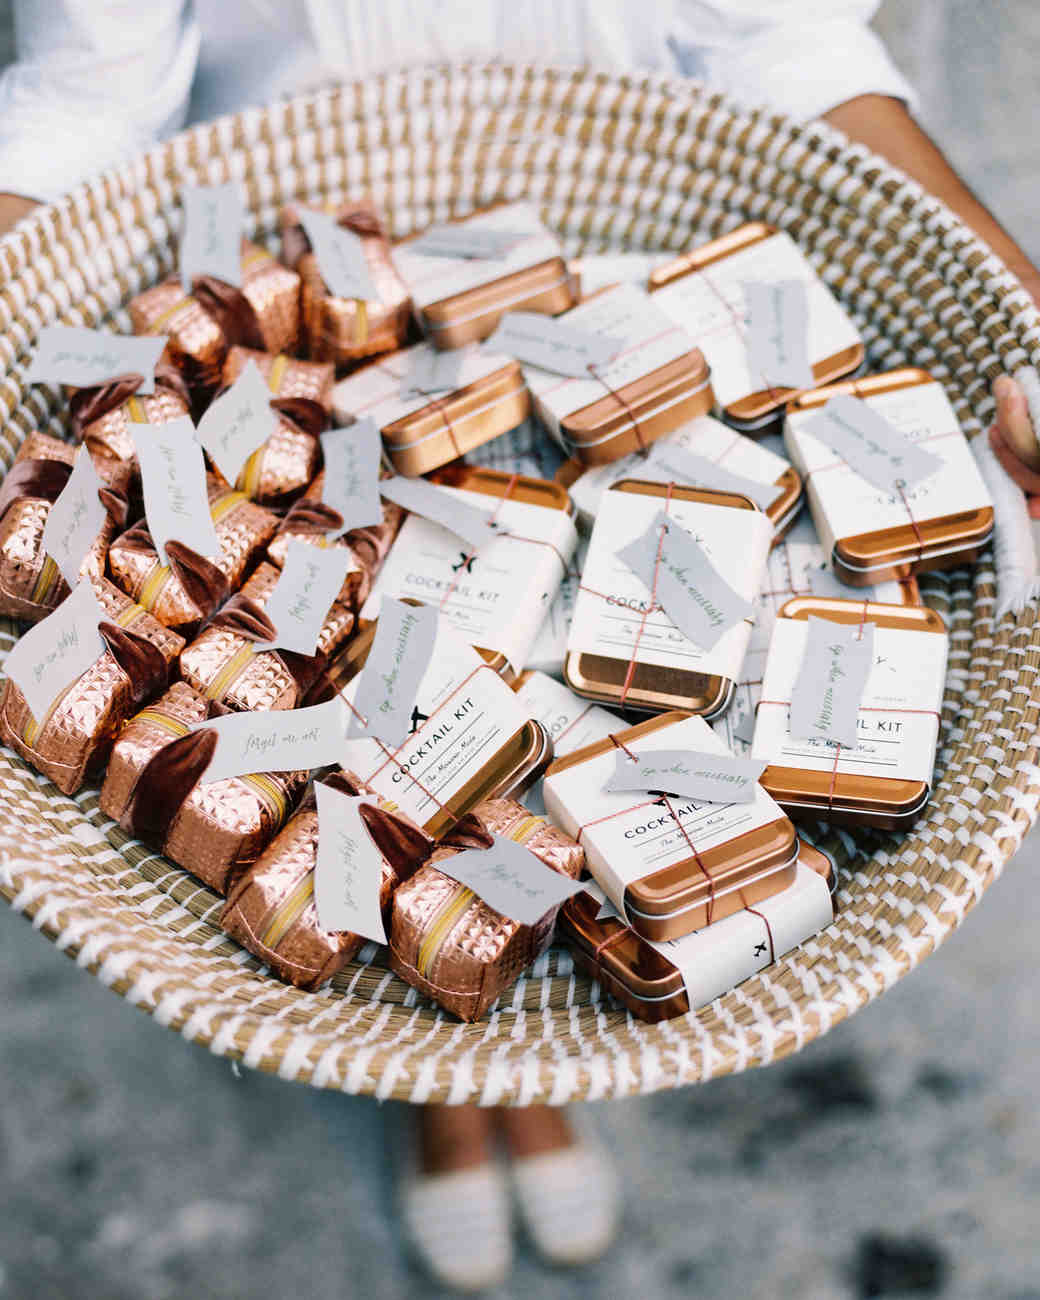 Wedding Favors: 50 Creative Wedding Favors That Will Delight Your Guests